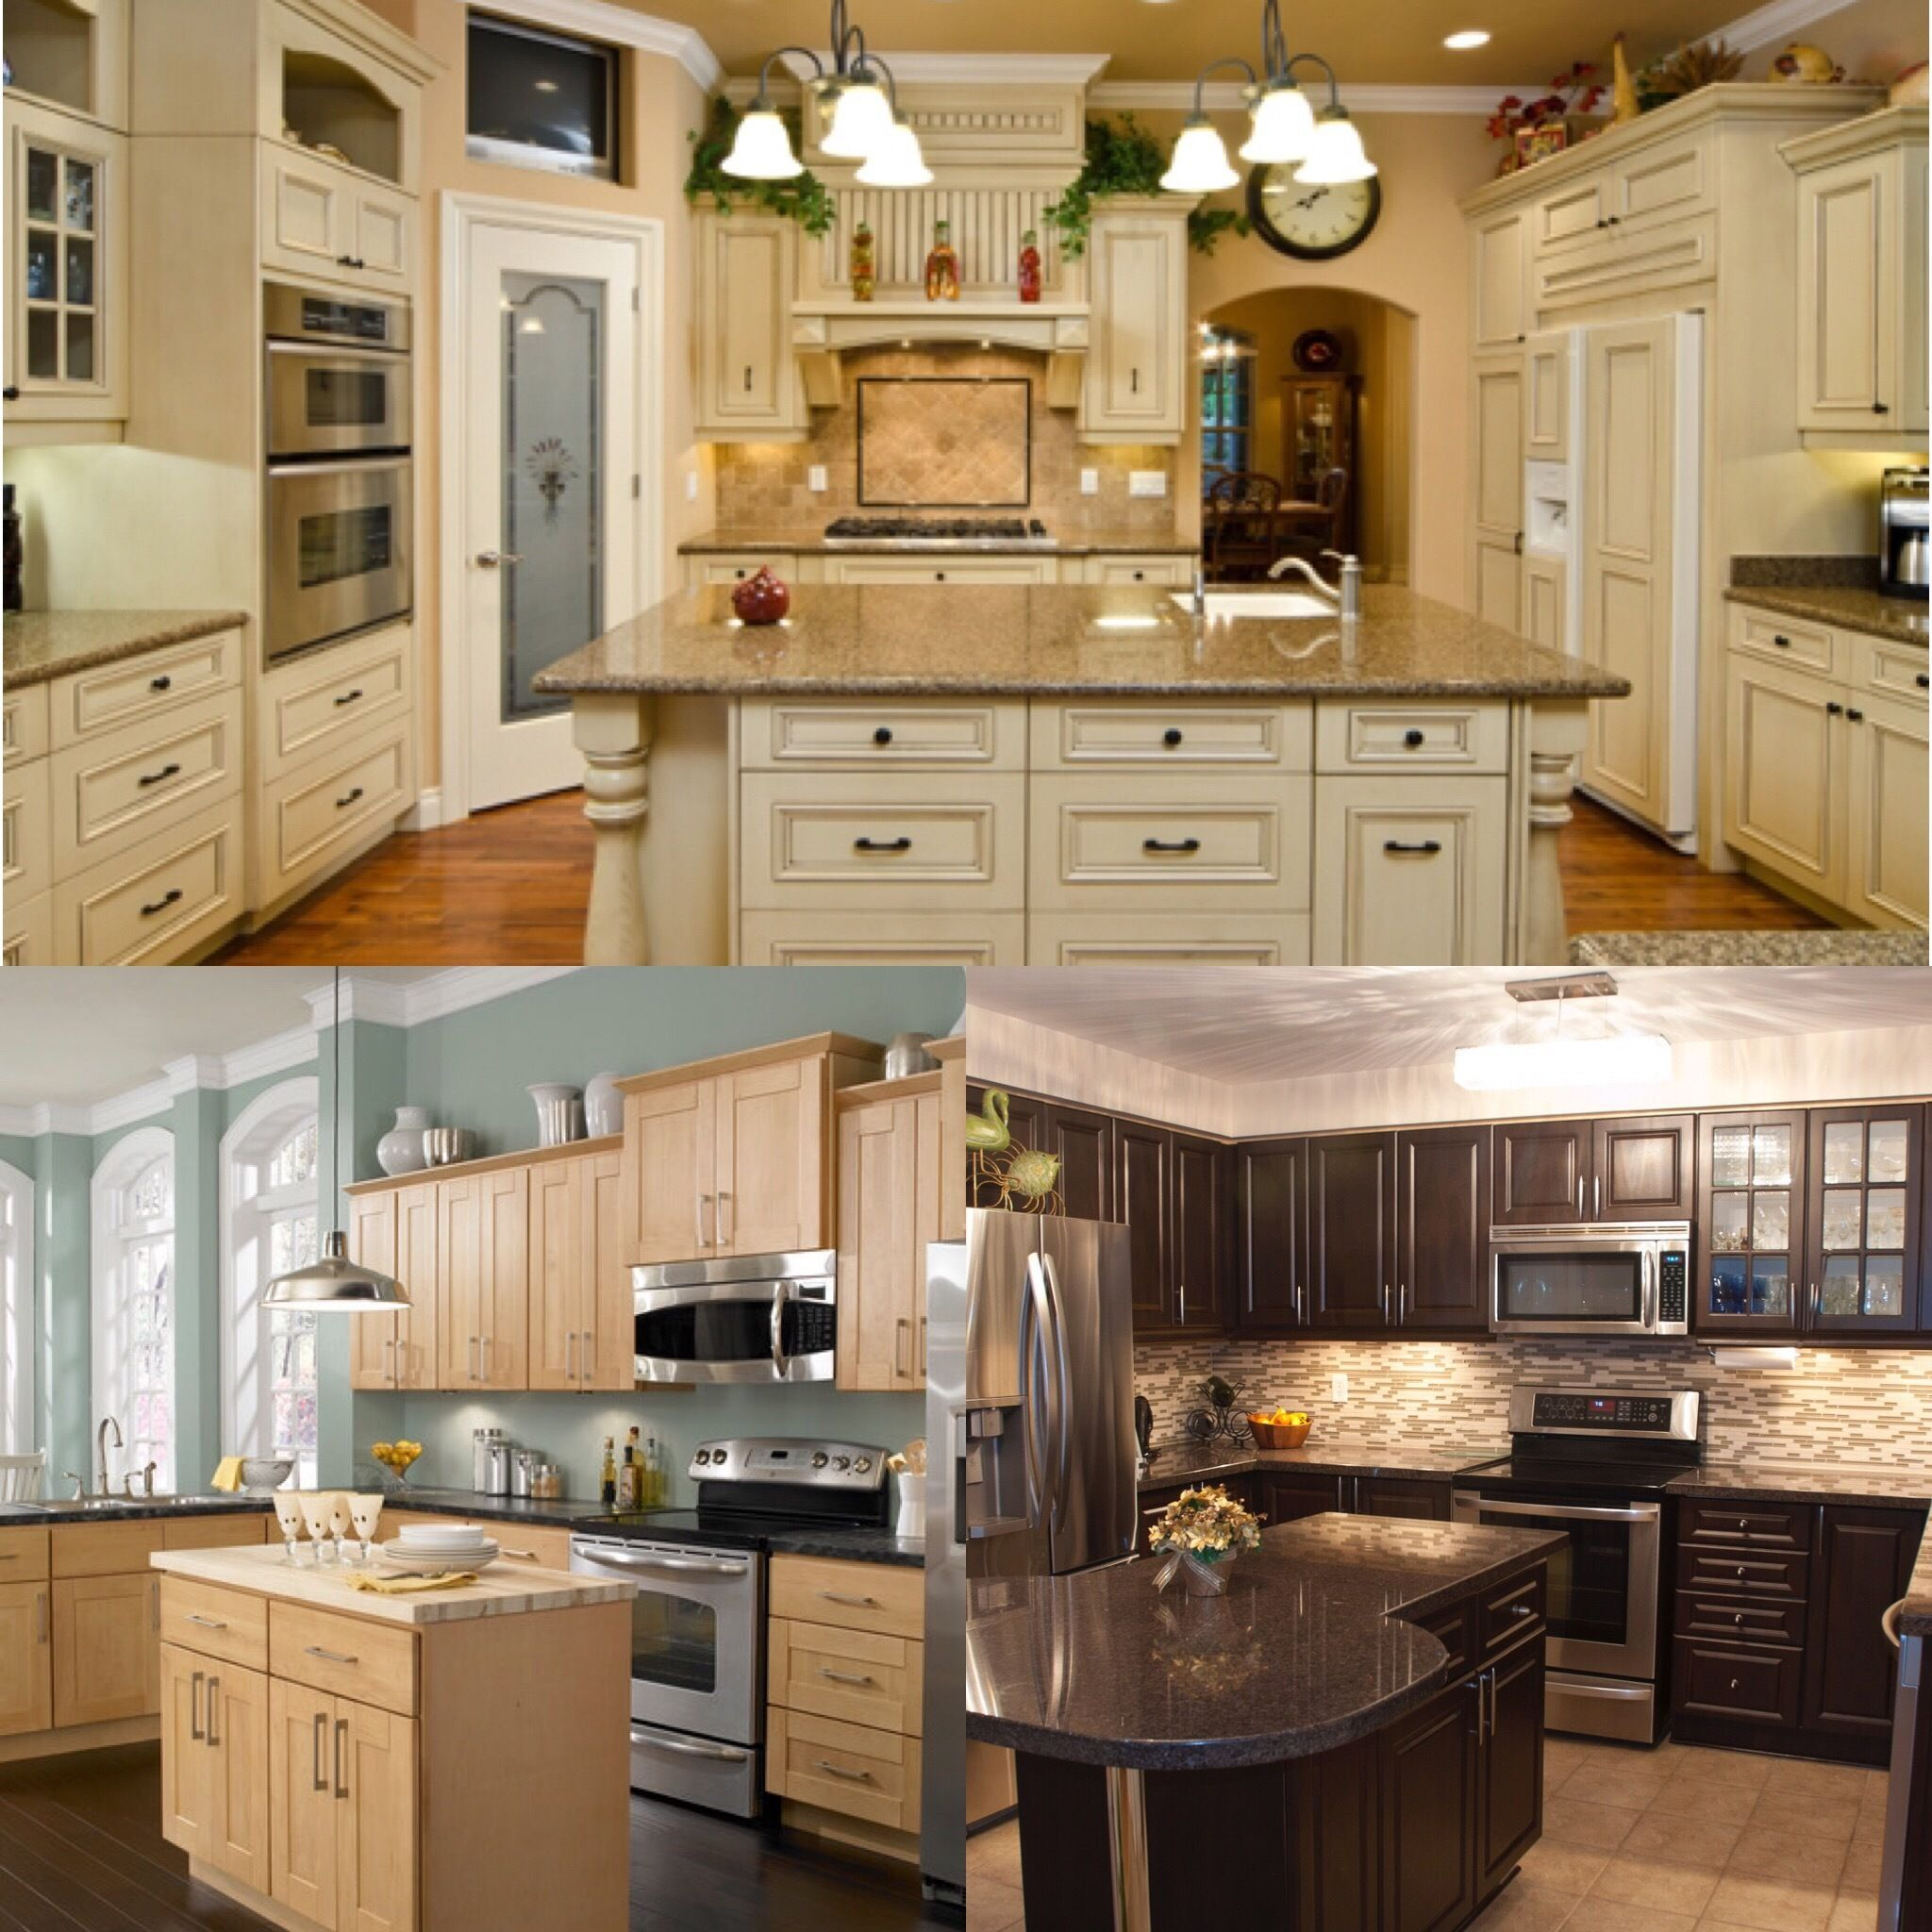 Staten Island Real Estate Staten Island Homes Dark Kitchen Dark Kitchen Cabinets Home Decor